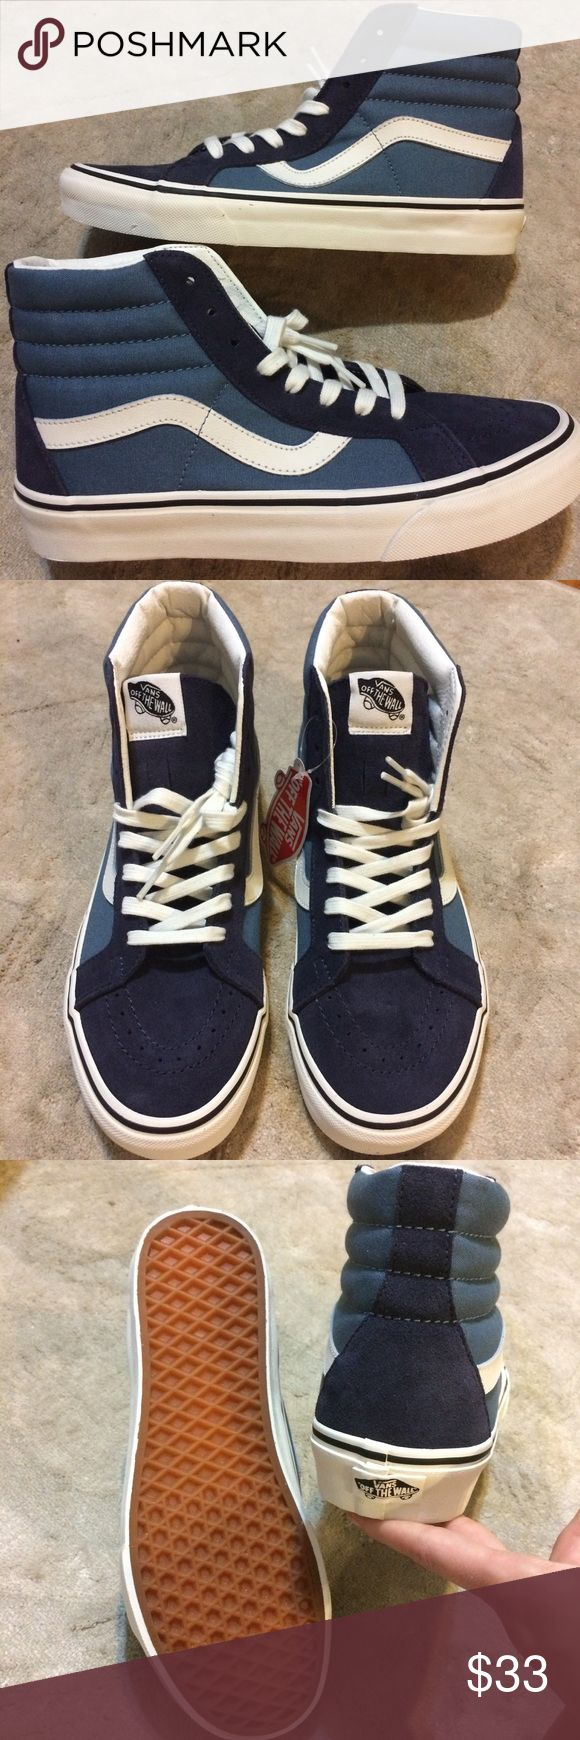 Lowest! Vans Skate Hi Top Suede & Canvas 2 Tone 2 Different sizes available!!       Never worn!!!          Great condition as pictured above!!!             Comes with the original box and an extra set of shoe laces and stickers!!!       Vans run true to size unless you are comparing to Nike. Then, they run a half size bigger.                ***Please don't make offers. This is my lowest price.💰.           *Darker blue on the front and back heel are a beautiful Suede while the lighter blue…